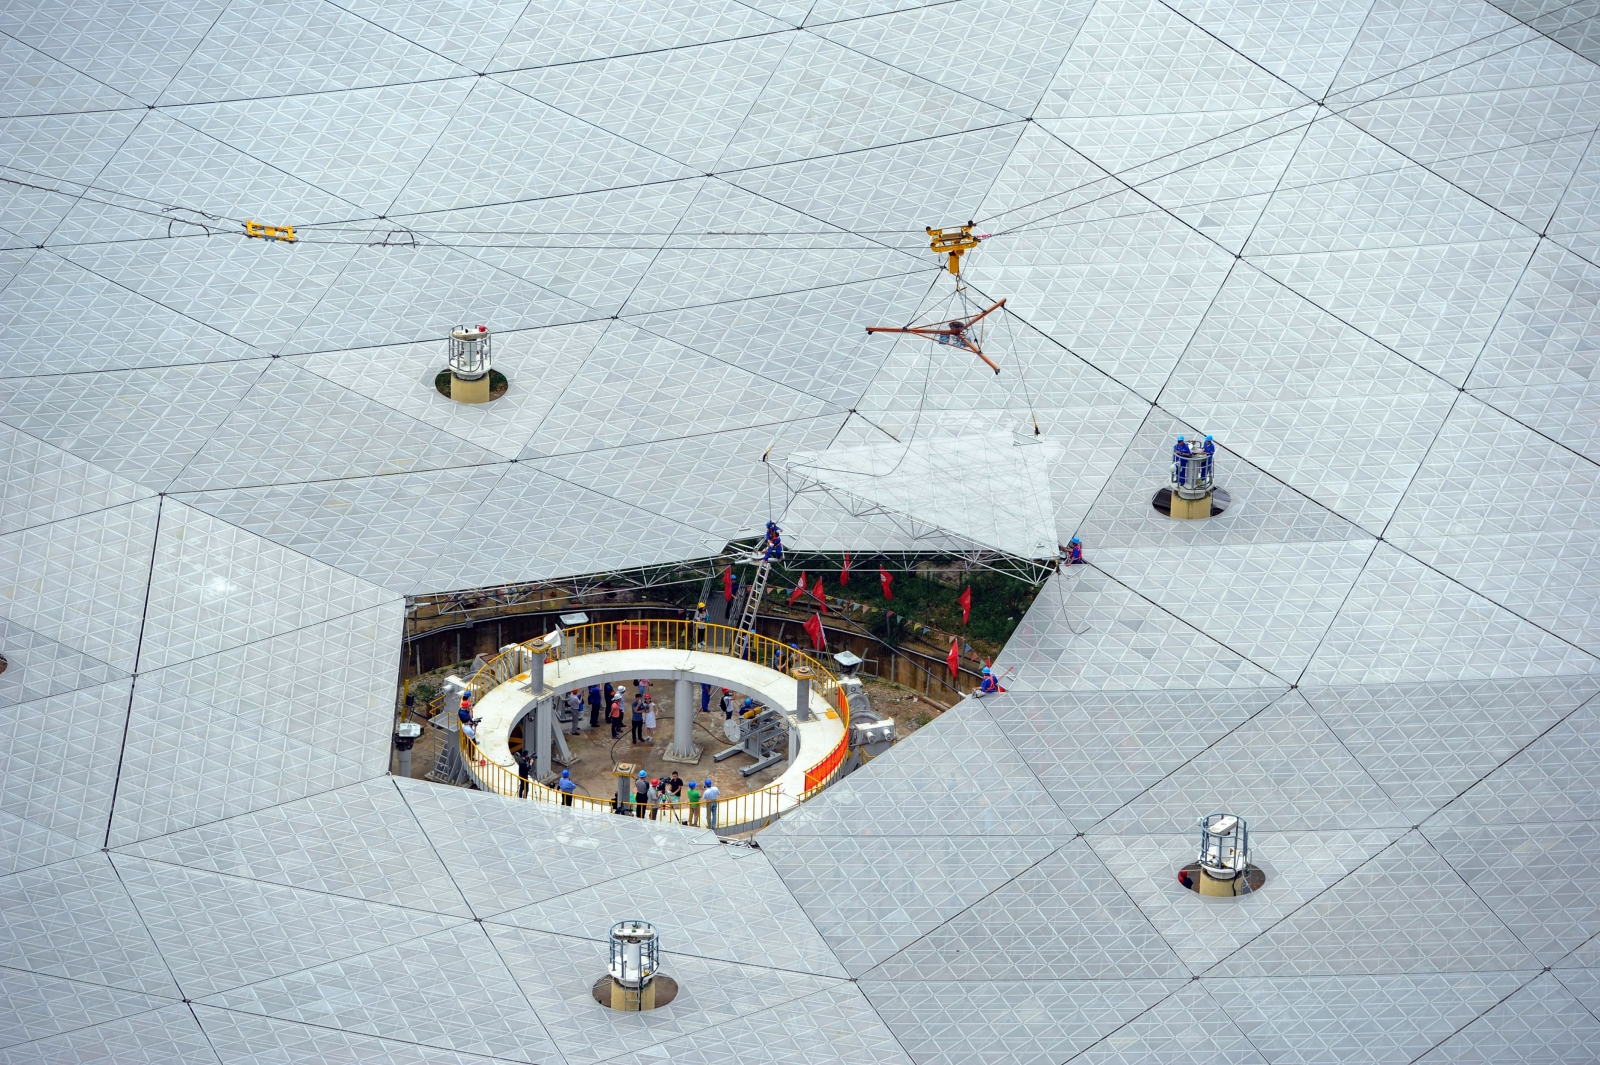 China builds world's largest radio telescope